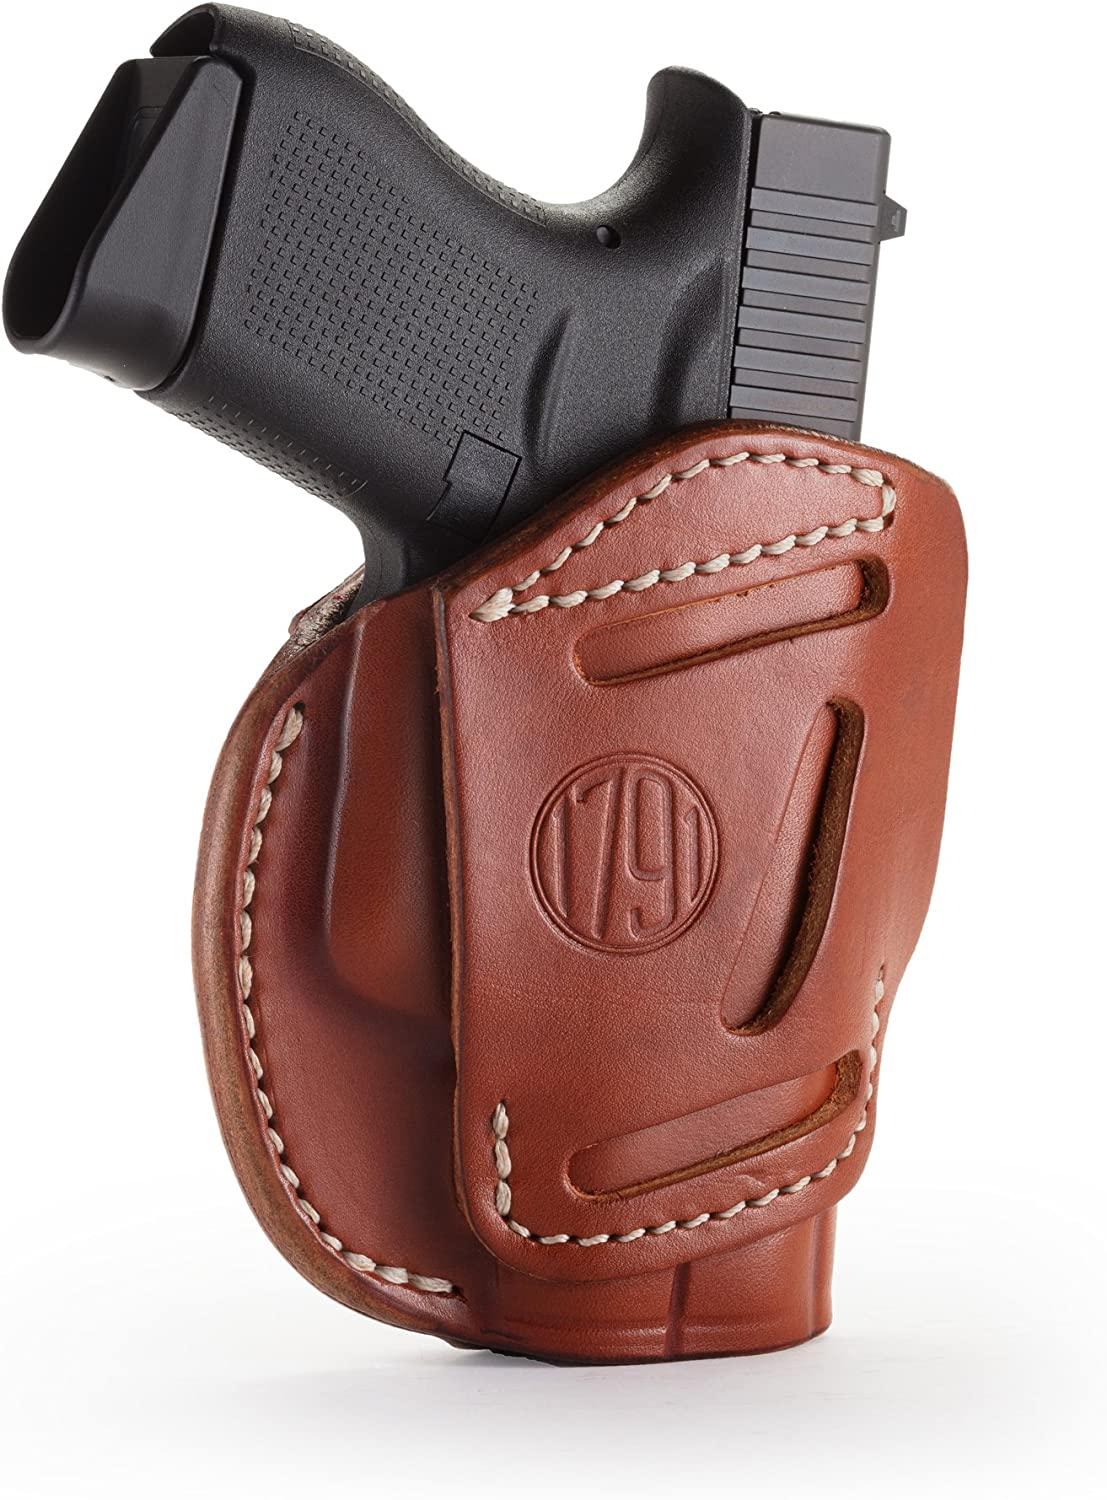 1791 GUNLEATHER 3-Way Glock Limited time for free shipping 43 Regular dealer Ambidex - CCW OWB Holster